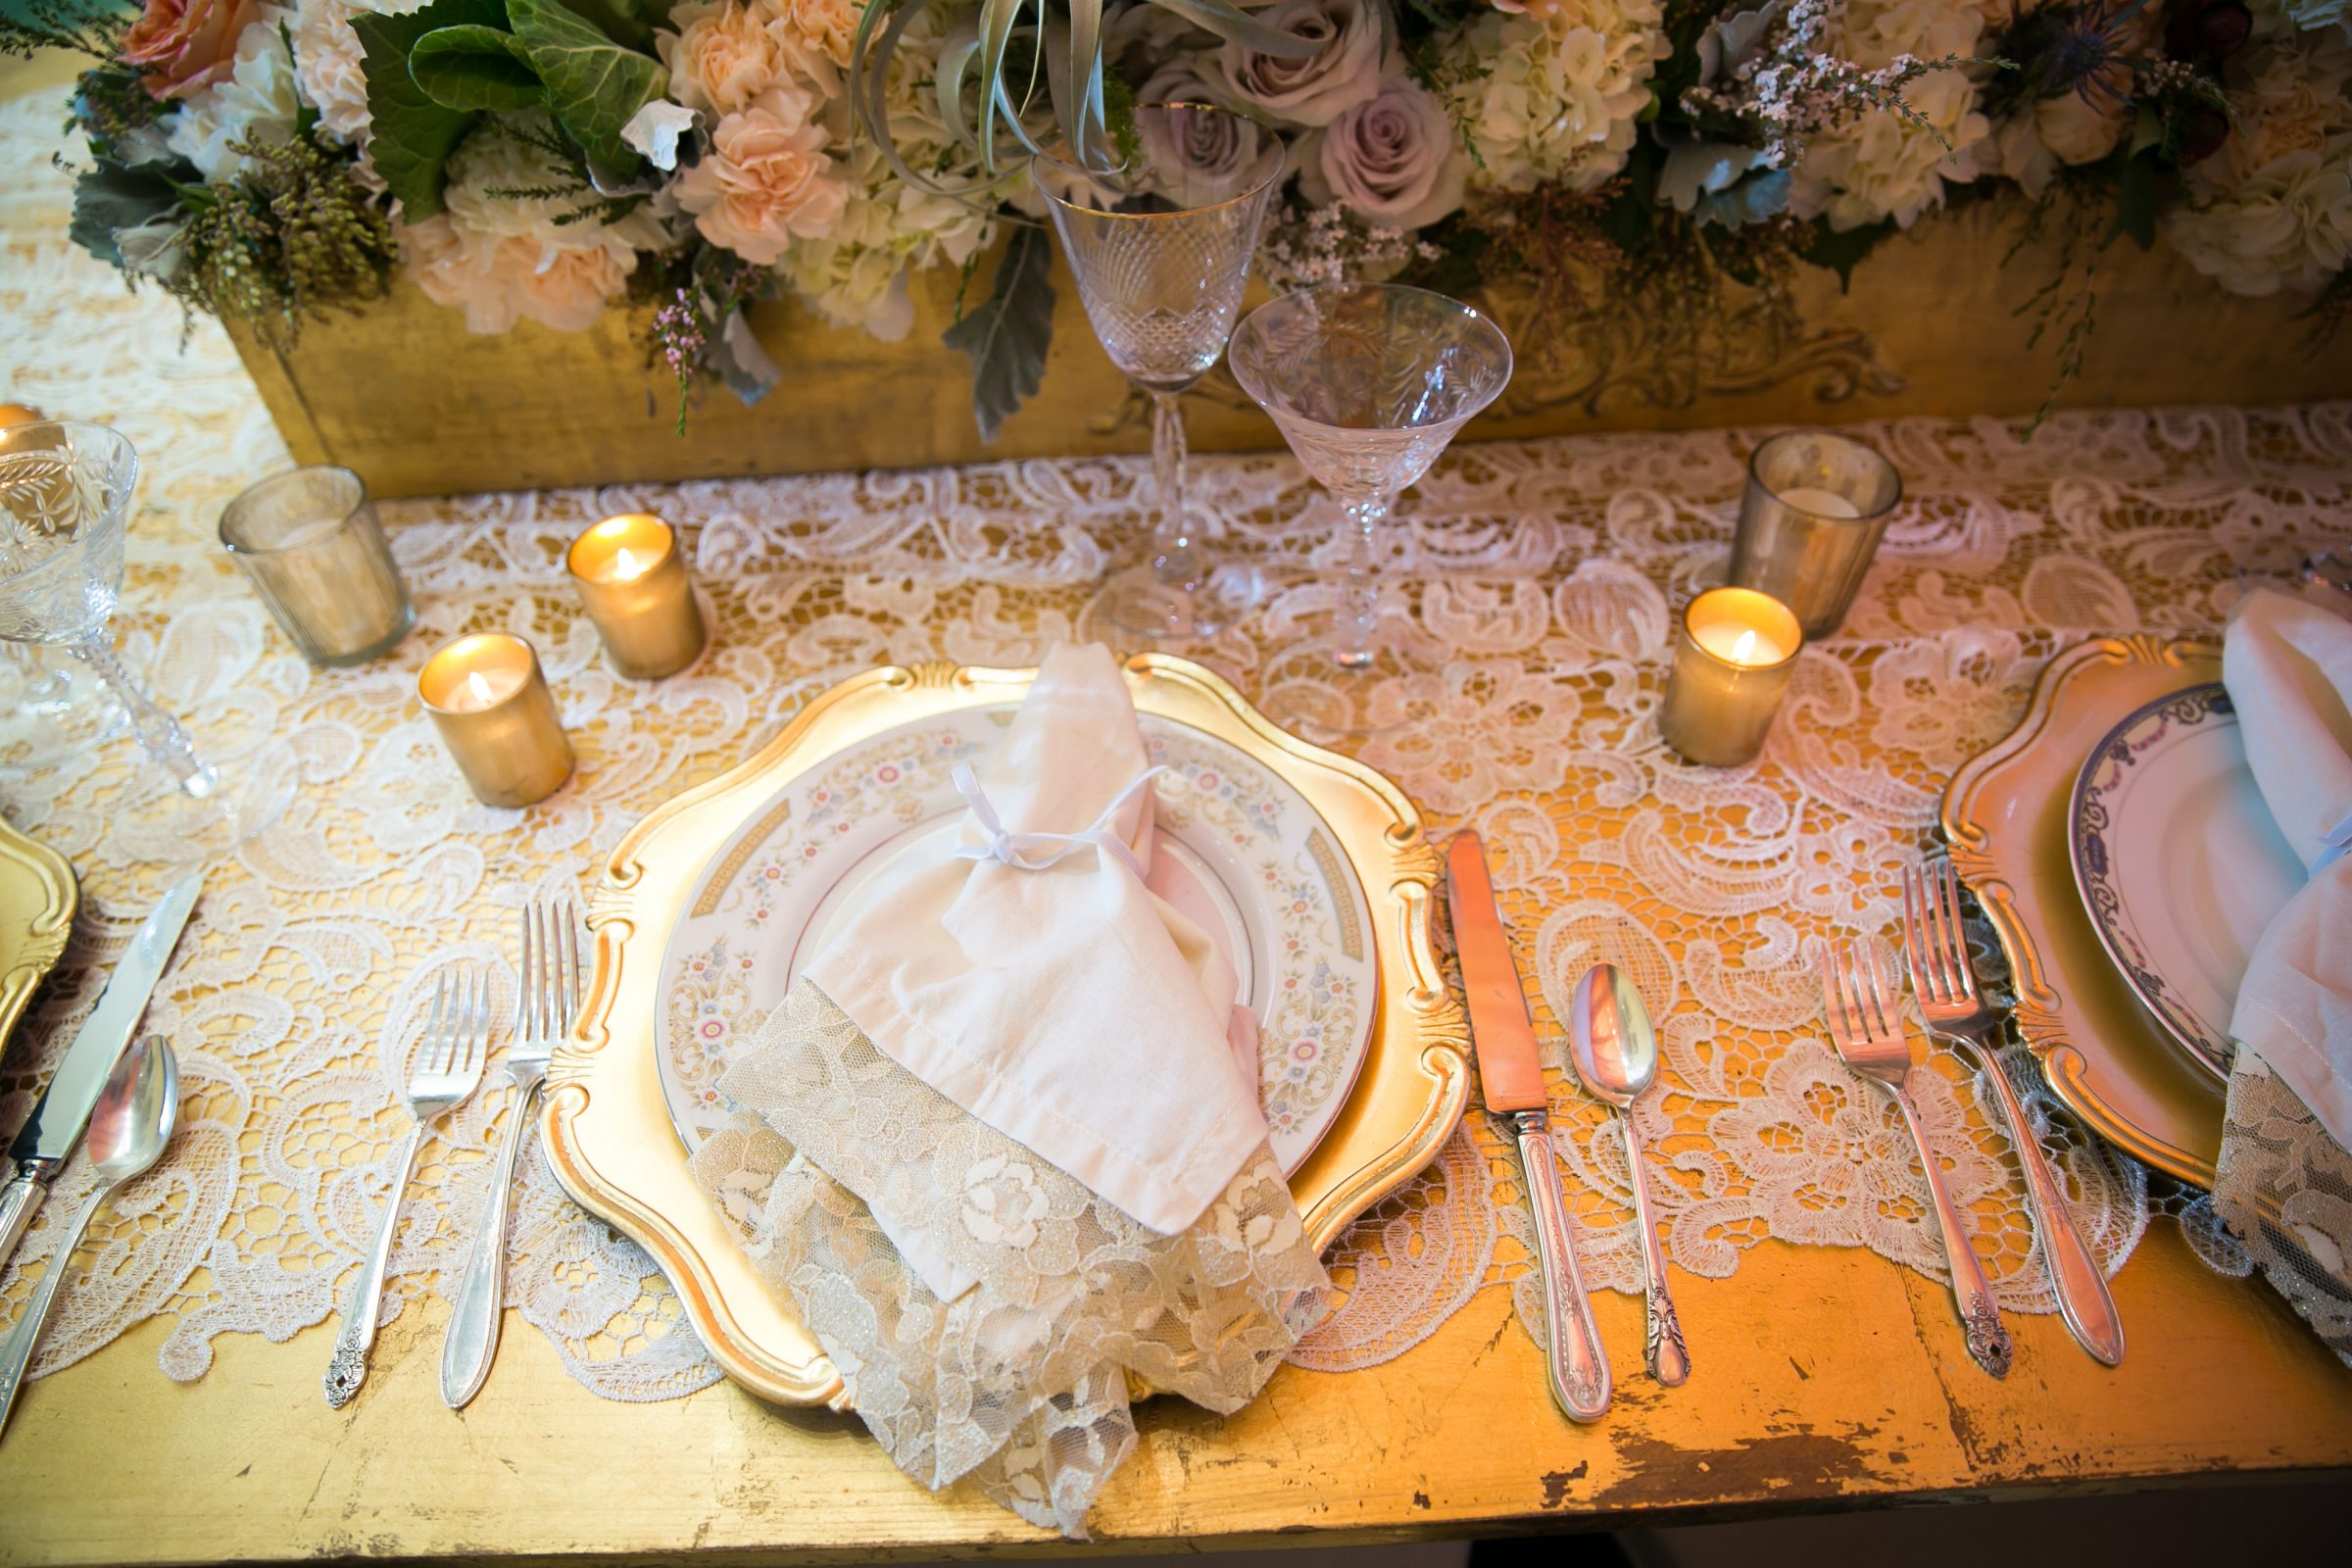 Gold wedding charger with vintage plate and napkin on top